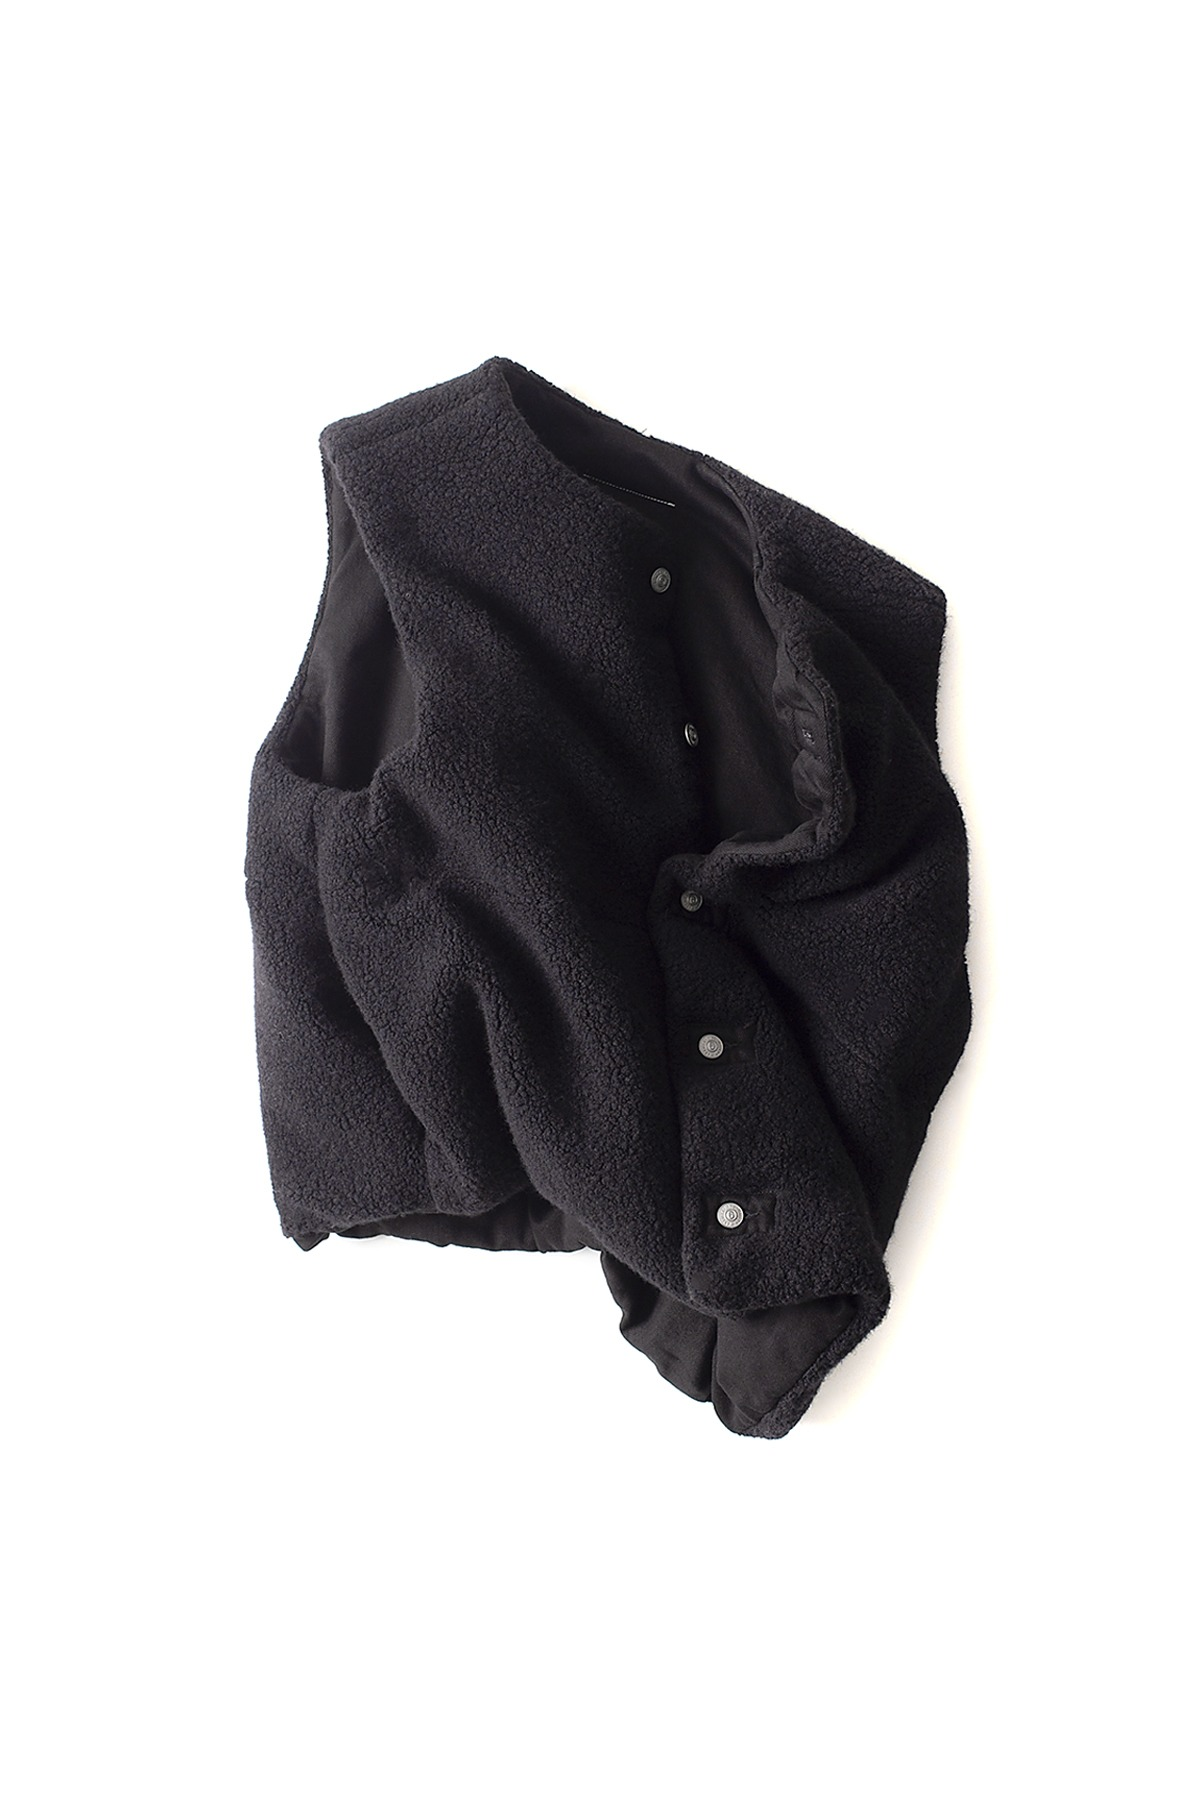 MM6 Maison Margiela : Gilet (Black)